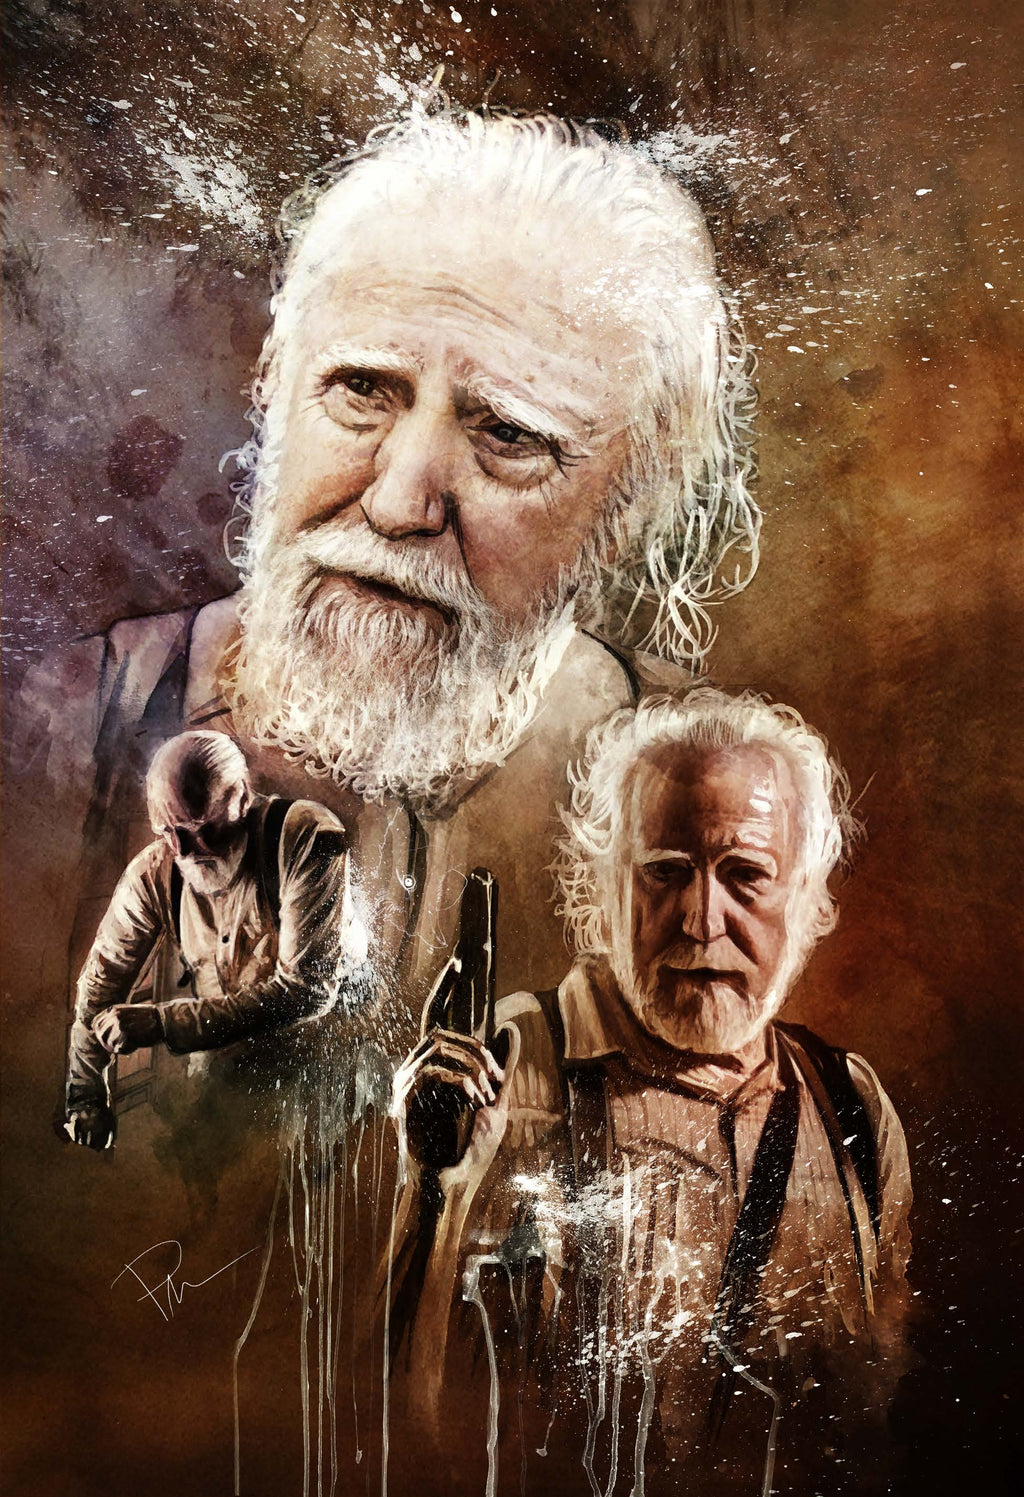 The Walking Dead Herschel 13x19 Print